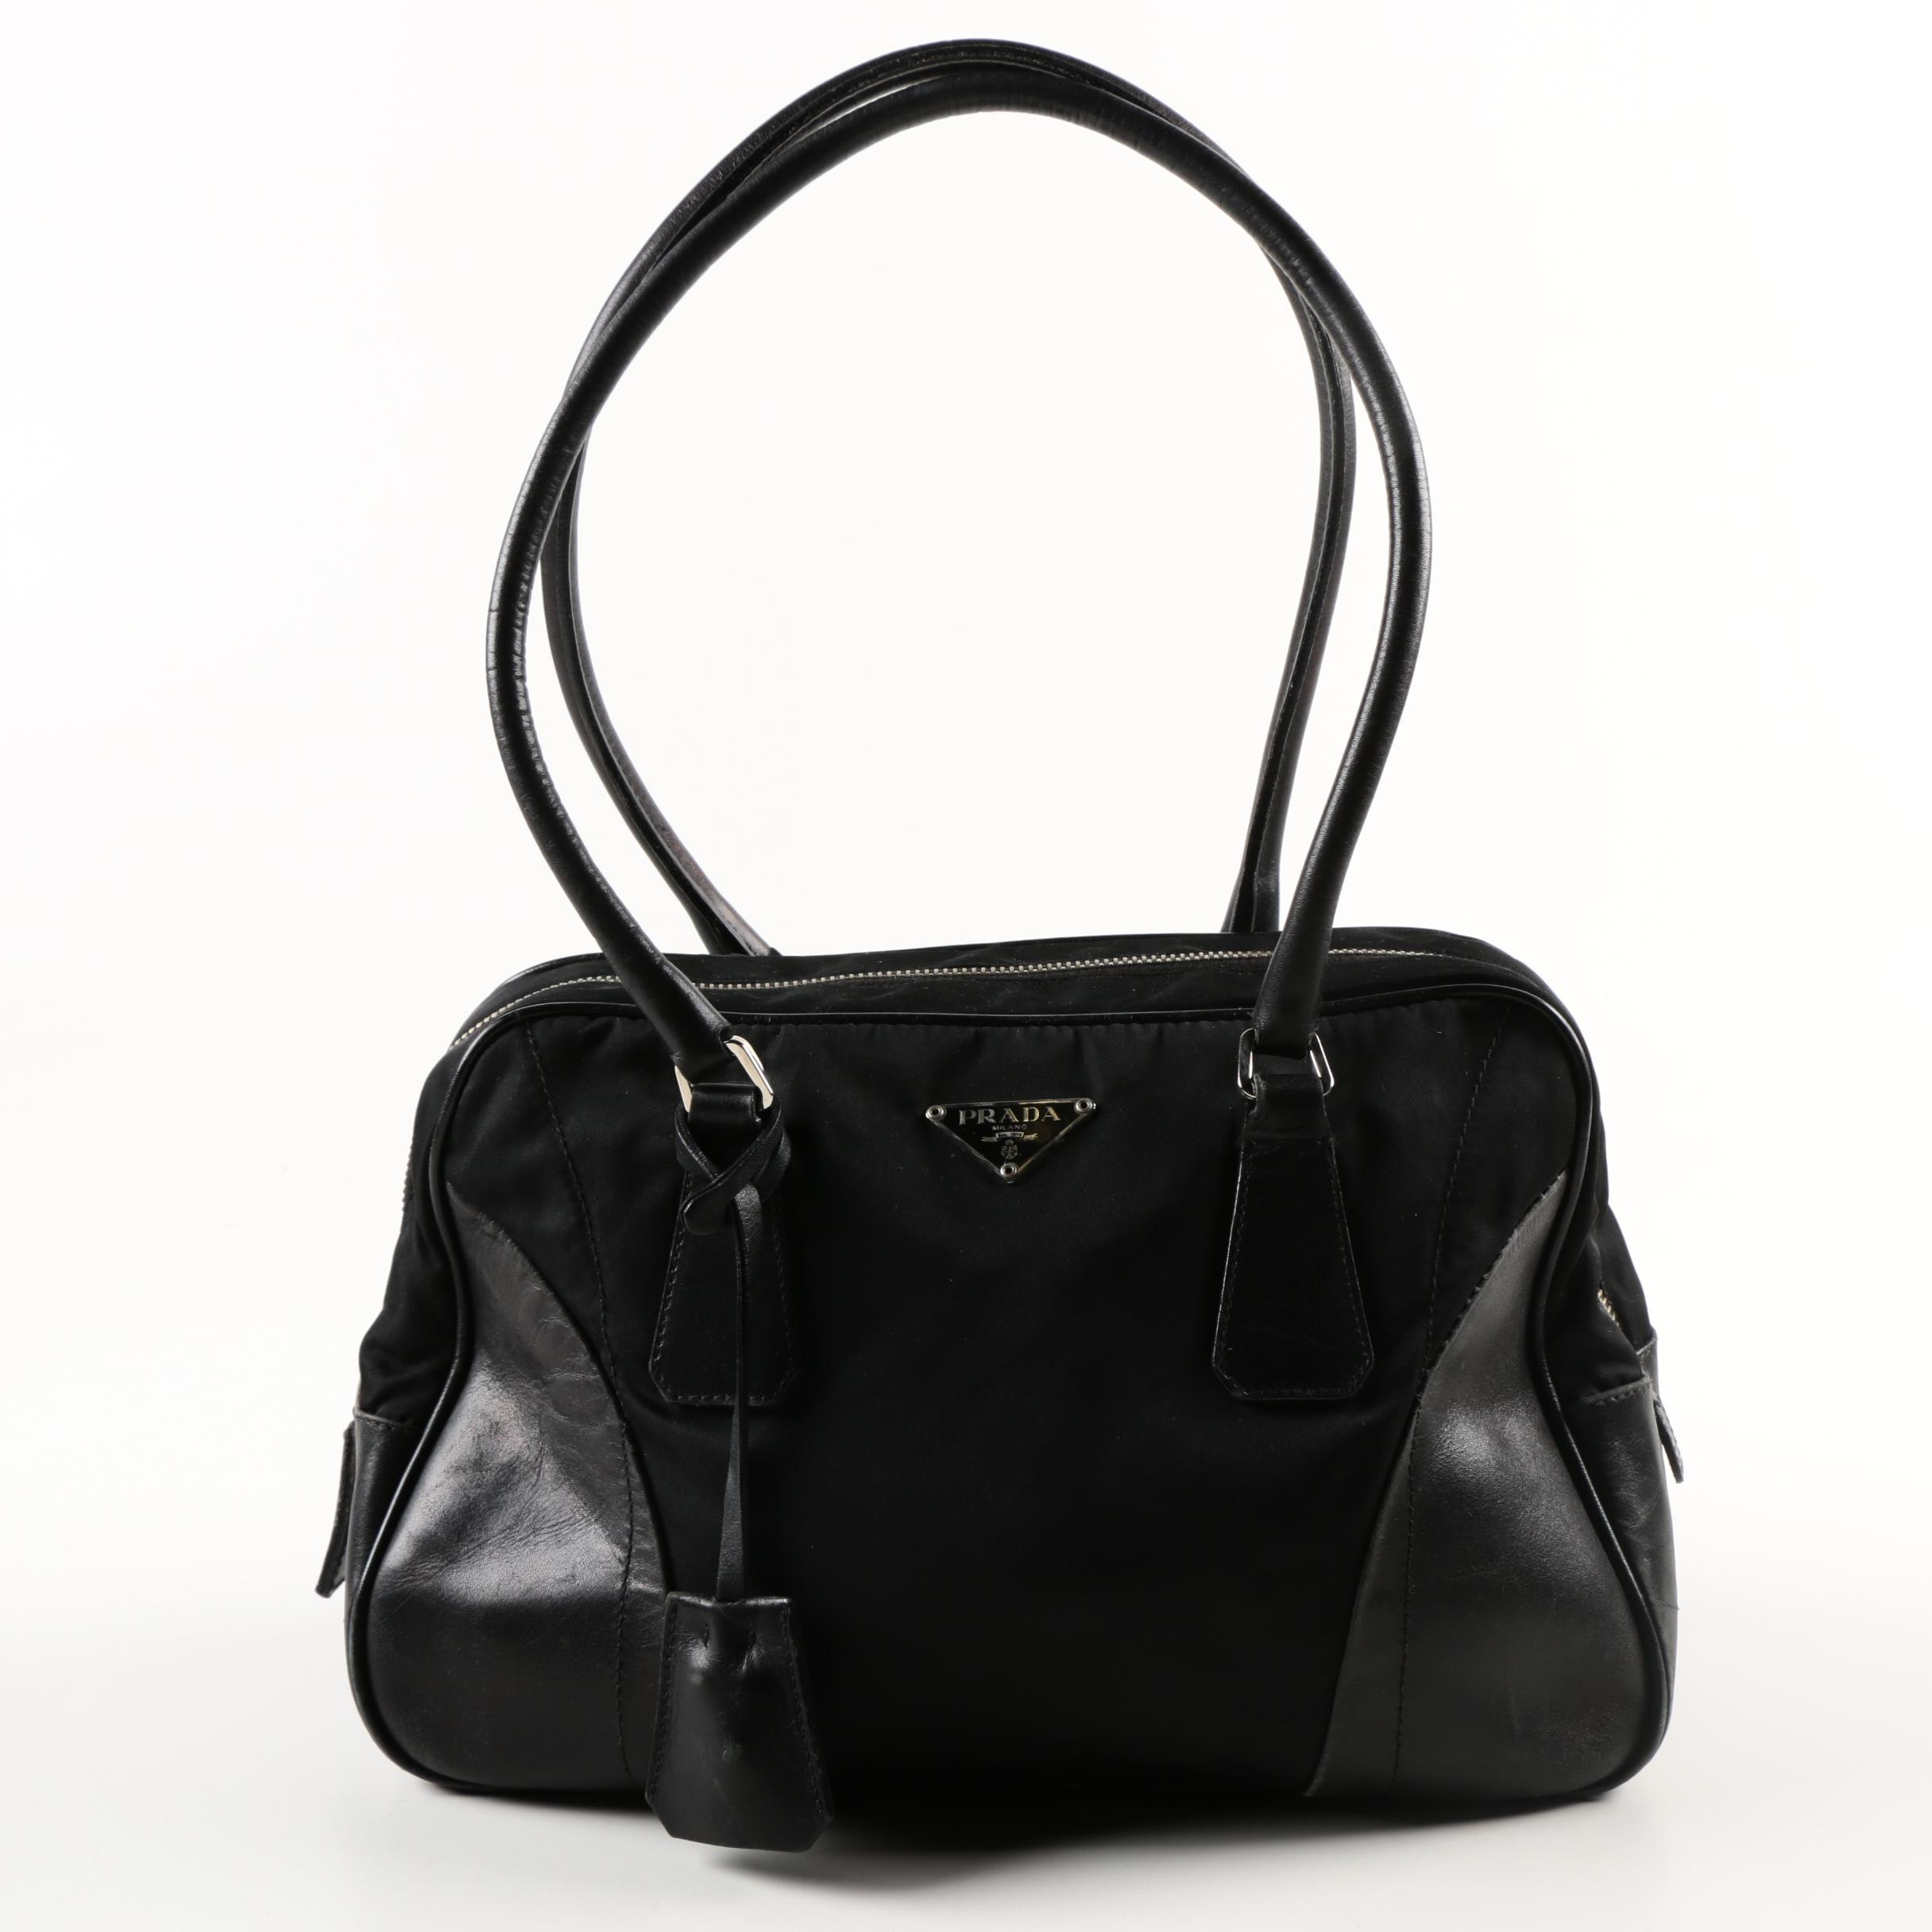 Prada Black Nylon and Leather Handbag